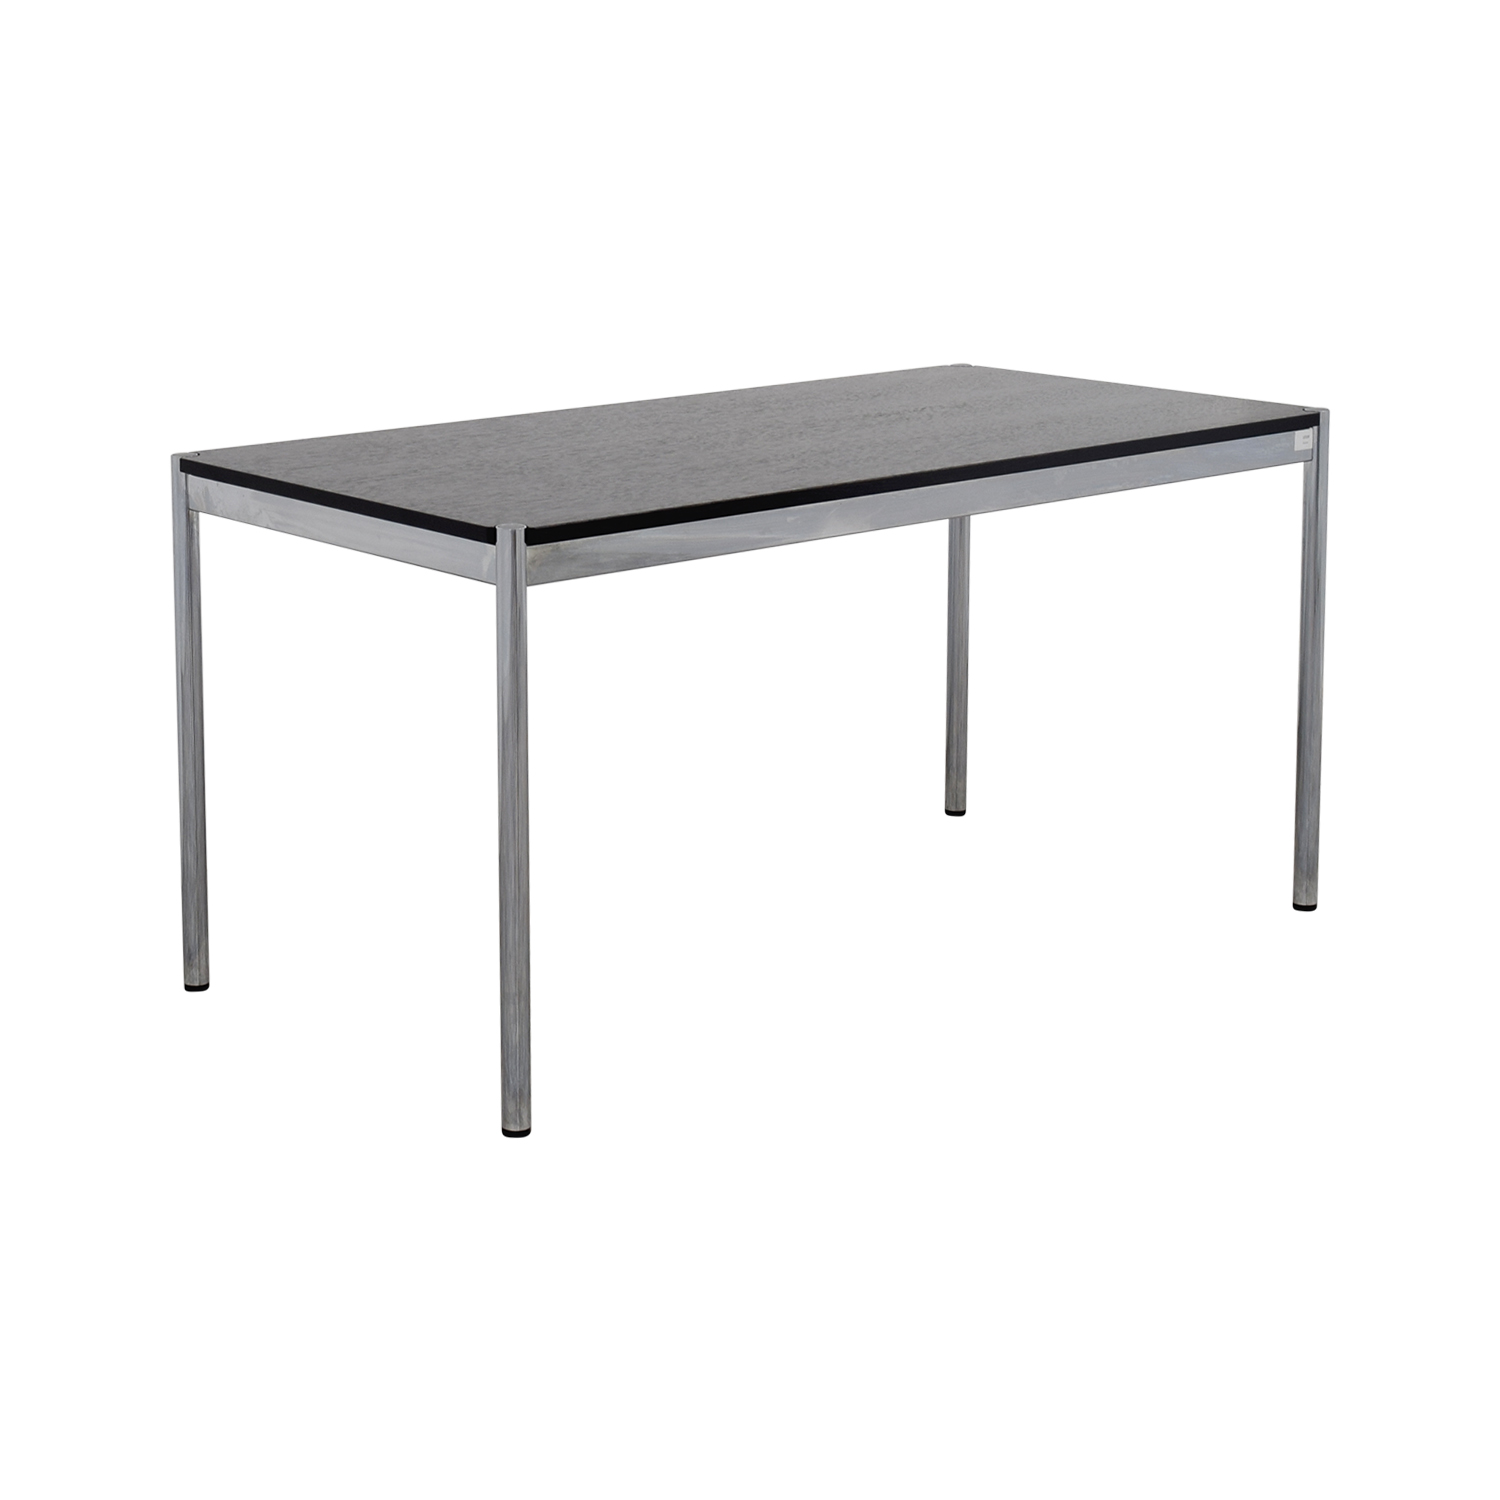 72 off the conran shop the conran shop haller black and for Shop dining tables